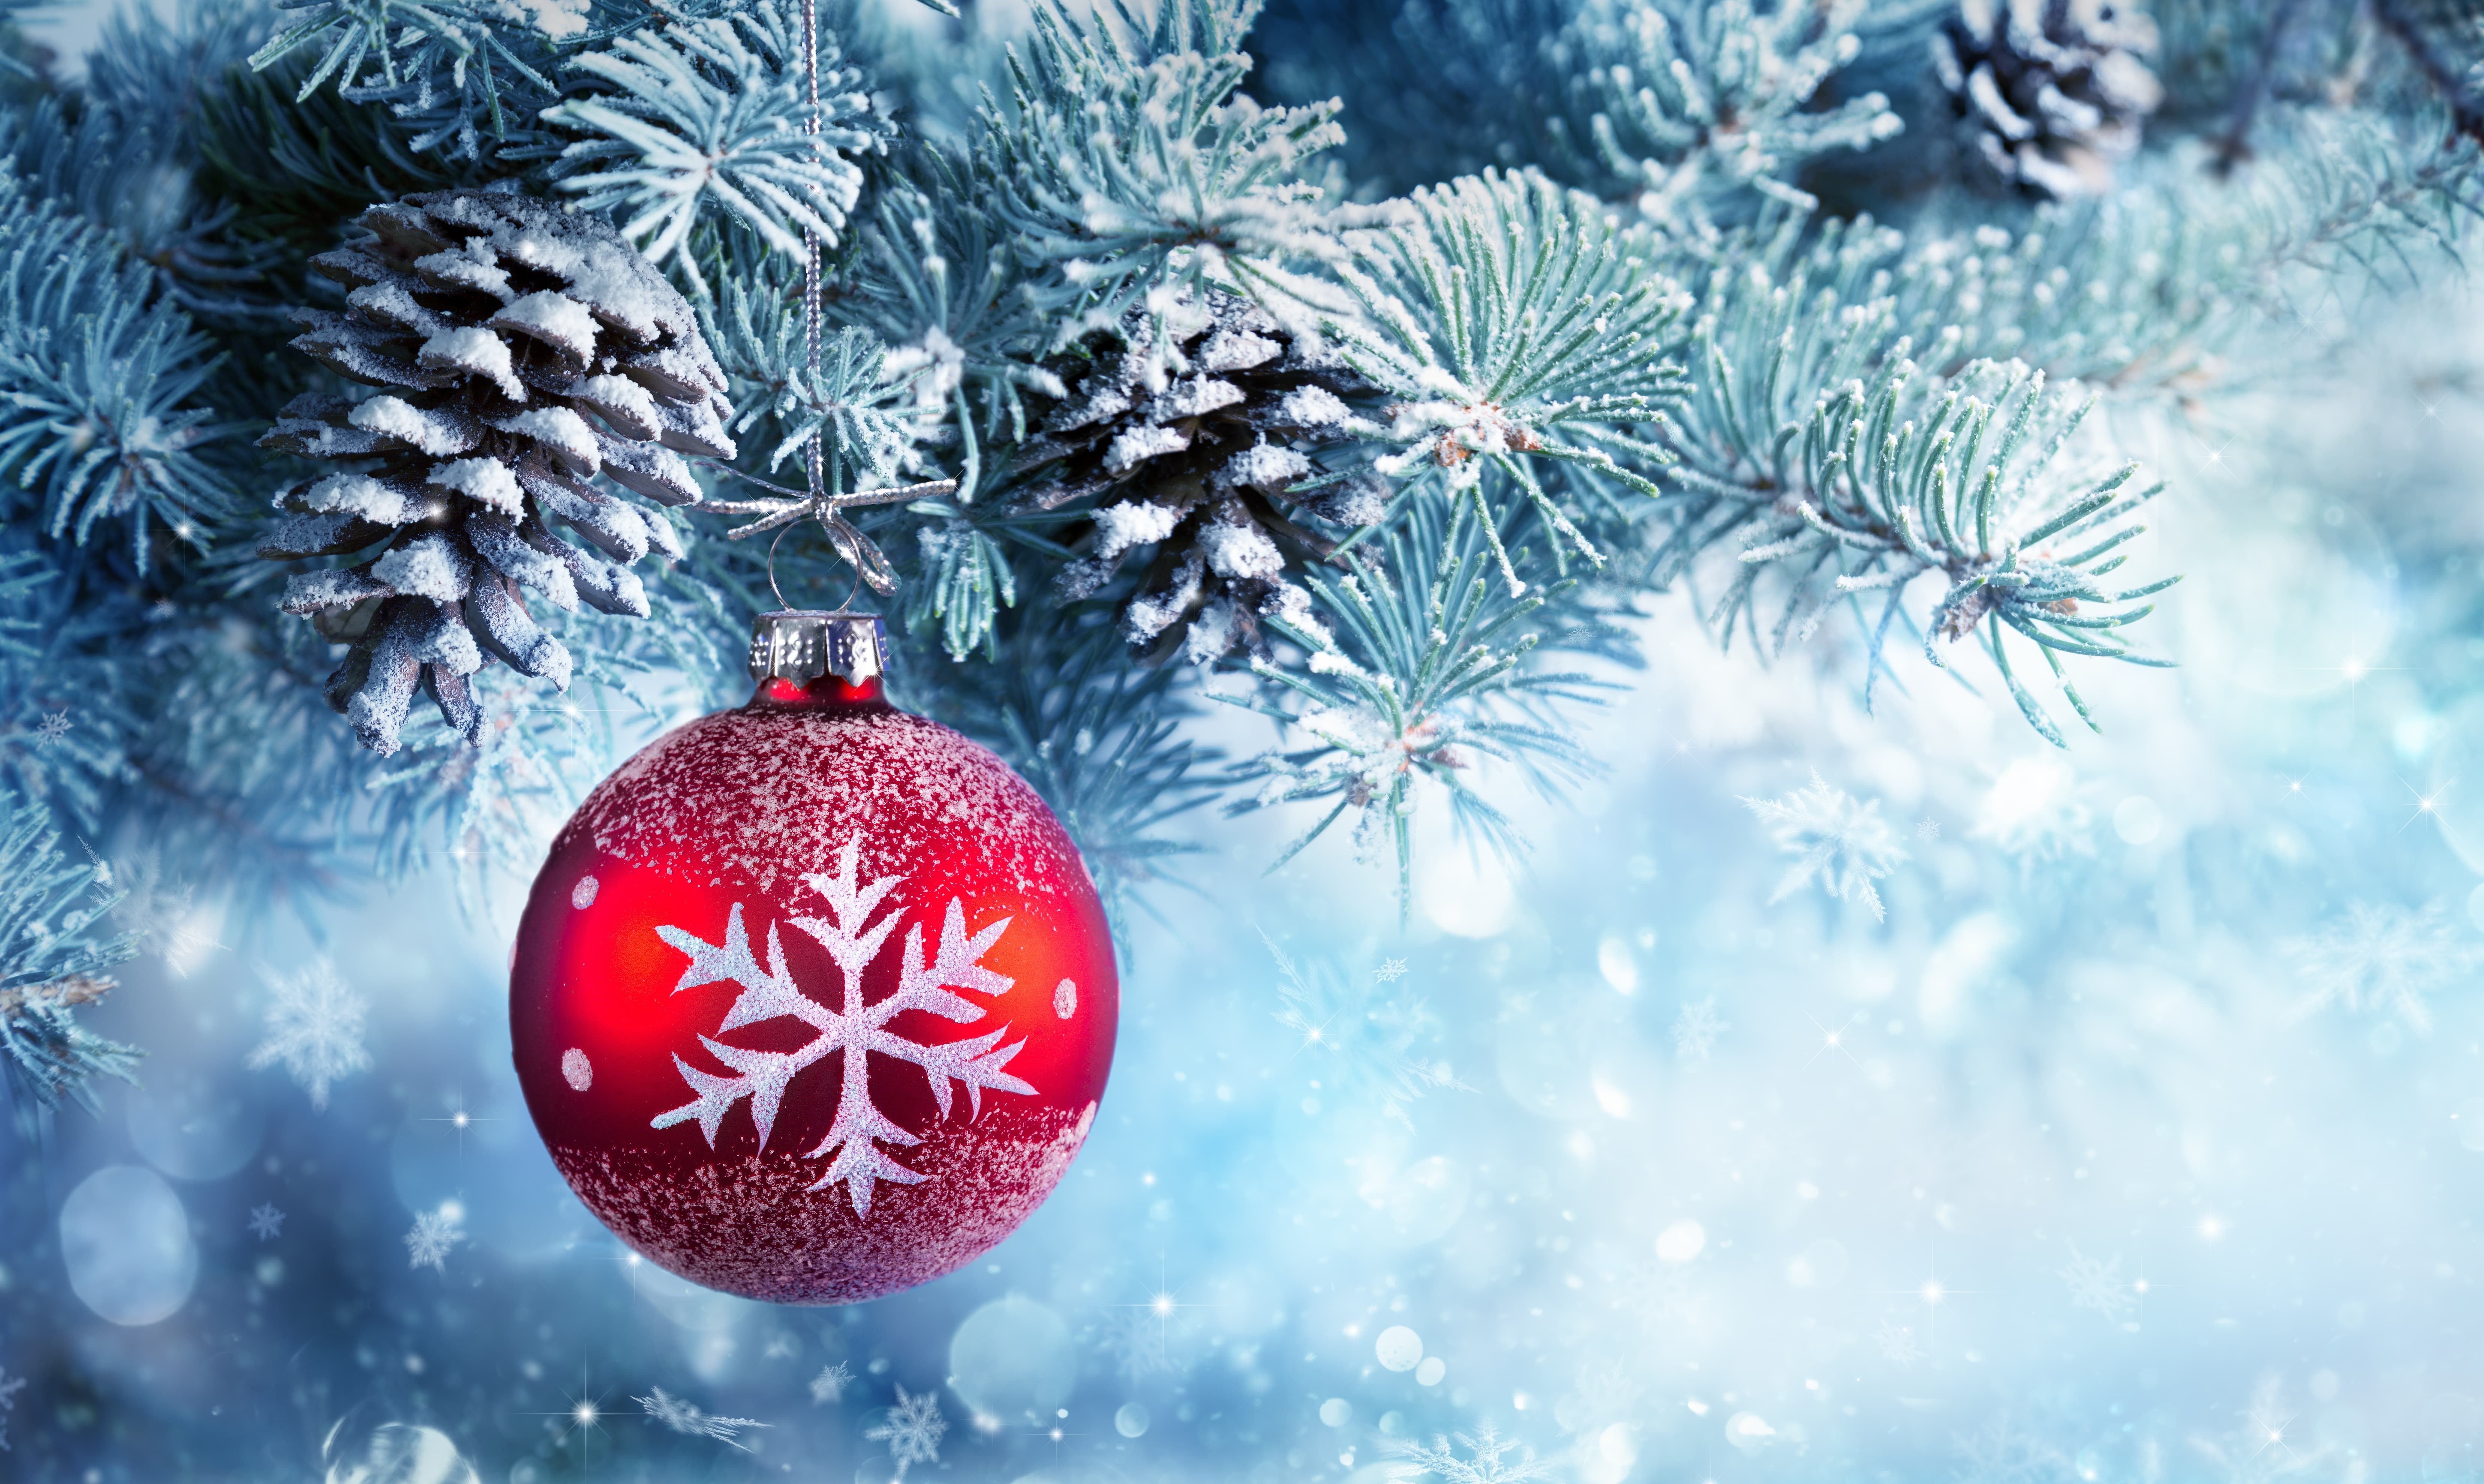 Christmas Pine Trees Wallpapers - Wallpaper Cave